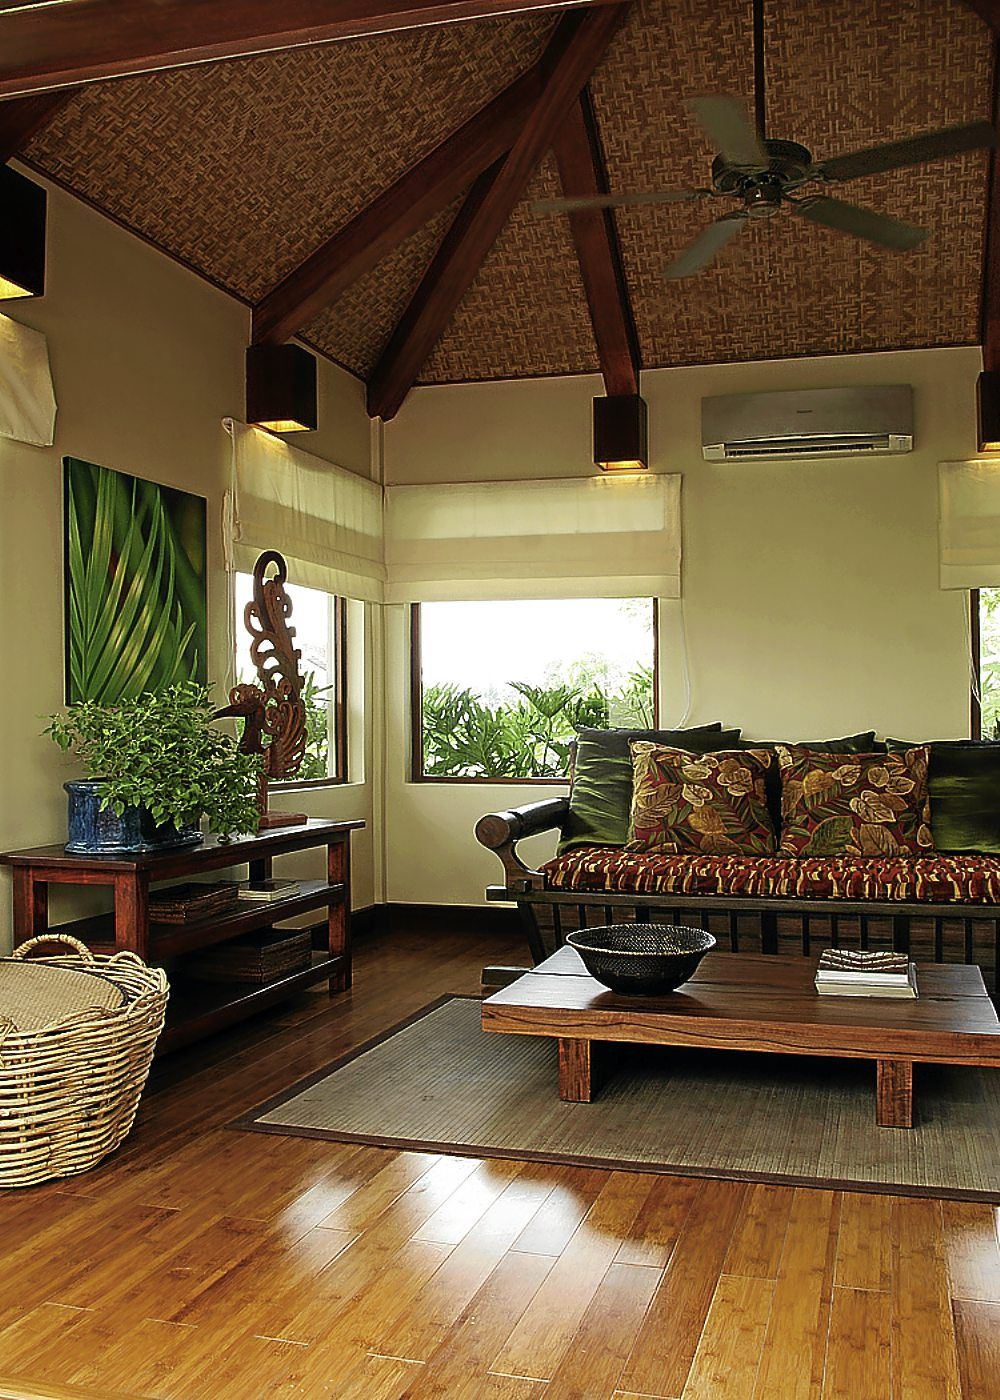 Modern filipino nipa hut House Interior